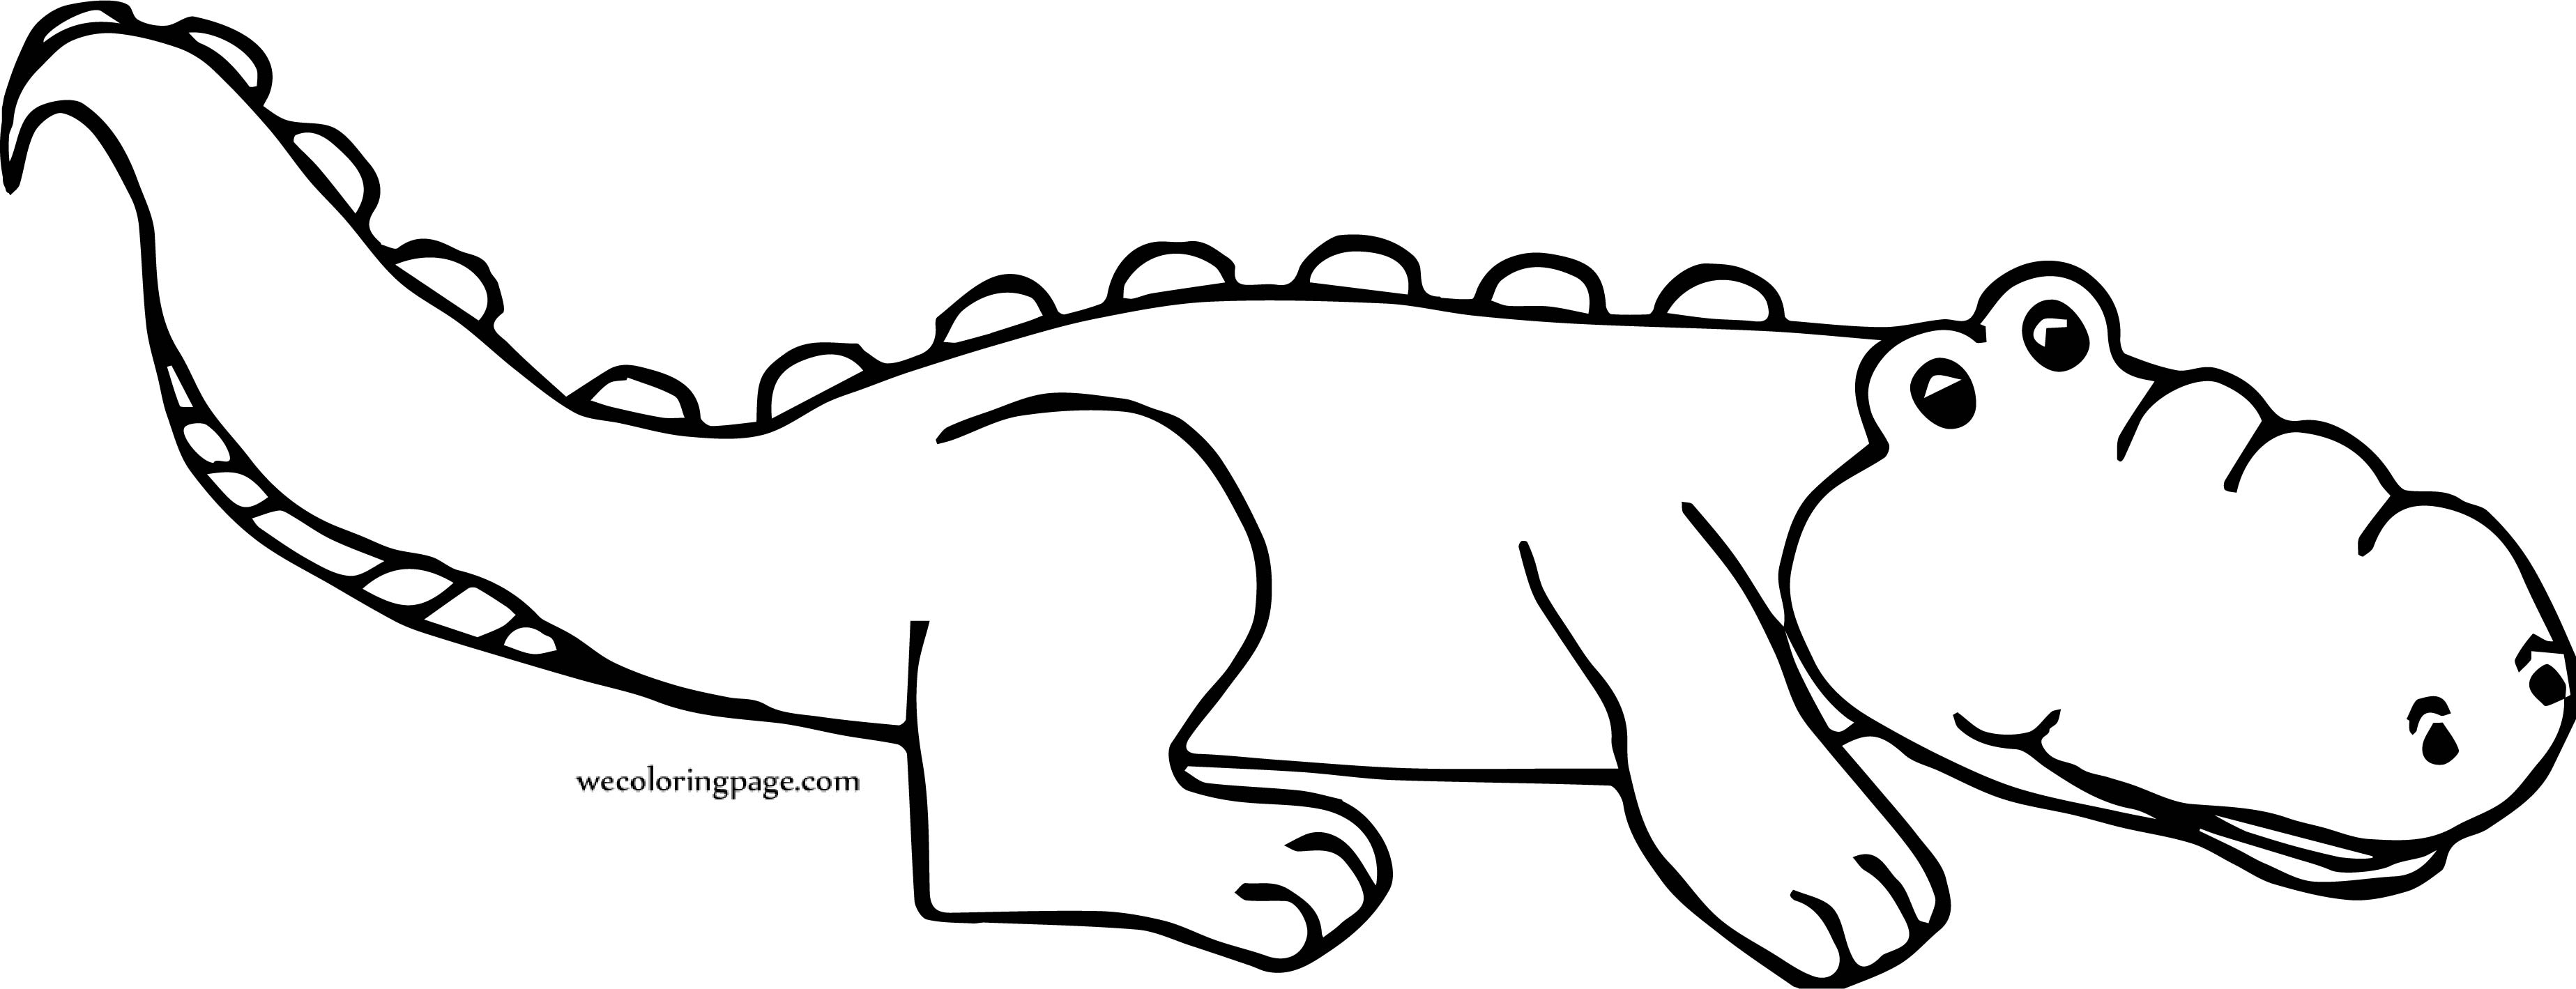 Crocodile Alligator Waiting Coloring Page